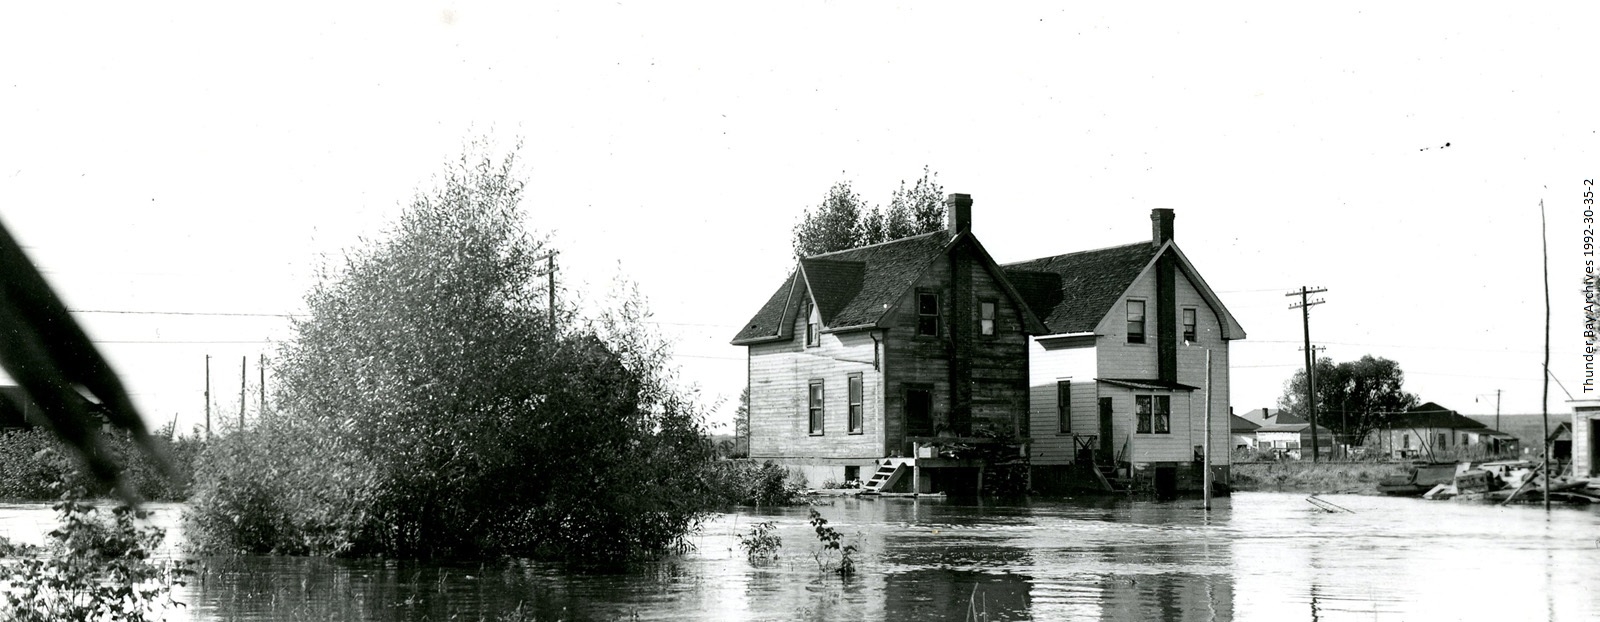 Two houses sit in a field of water after a flood